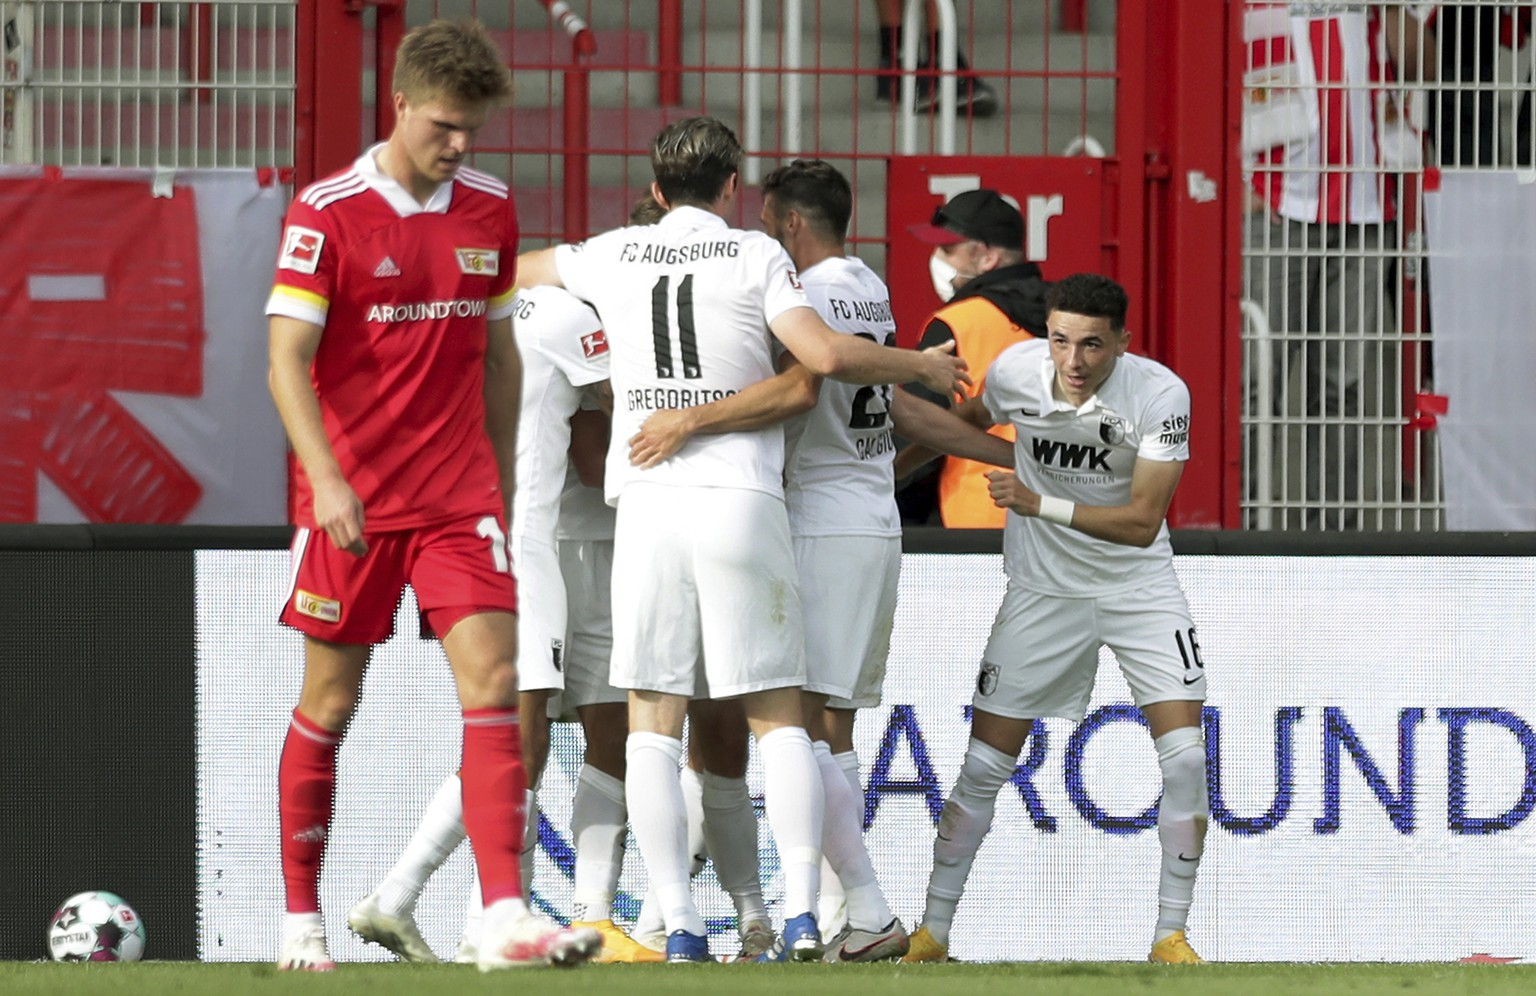 Augsburg's scorer Ruben Vargas, right, and his teammates celebrate the opening goal during the German Bundesliga soccer match between 1. FC Union Berlin and FC Augsburg in Berlin, Germany, Saturday, Sept. 19, 2020. (AP Photo/Michael Sohn)